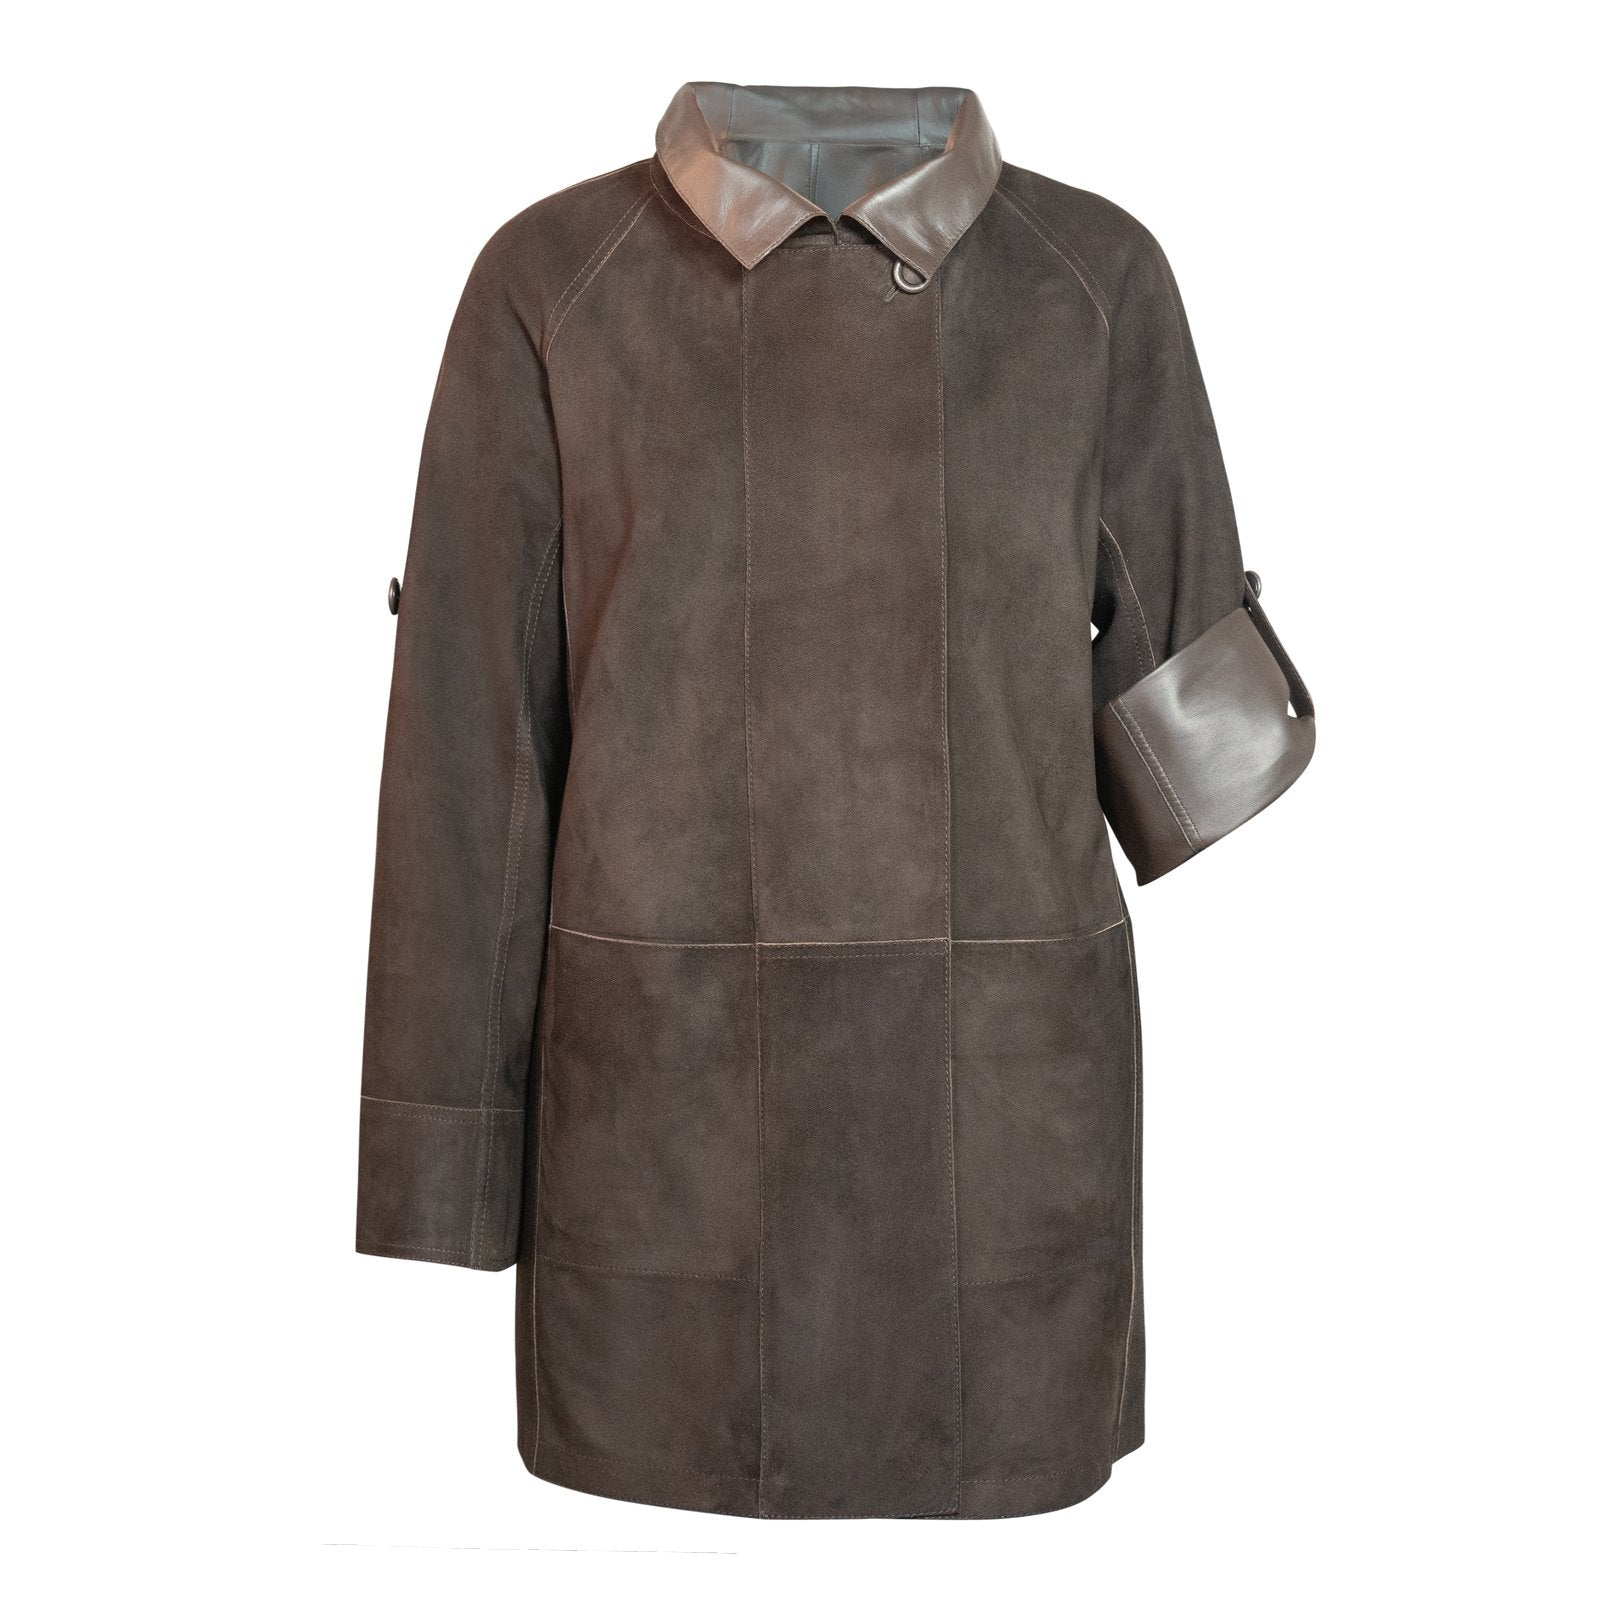 ALBA Reversible Leather Jacket in Brown - Jennifer Tattanelli